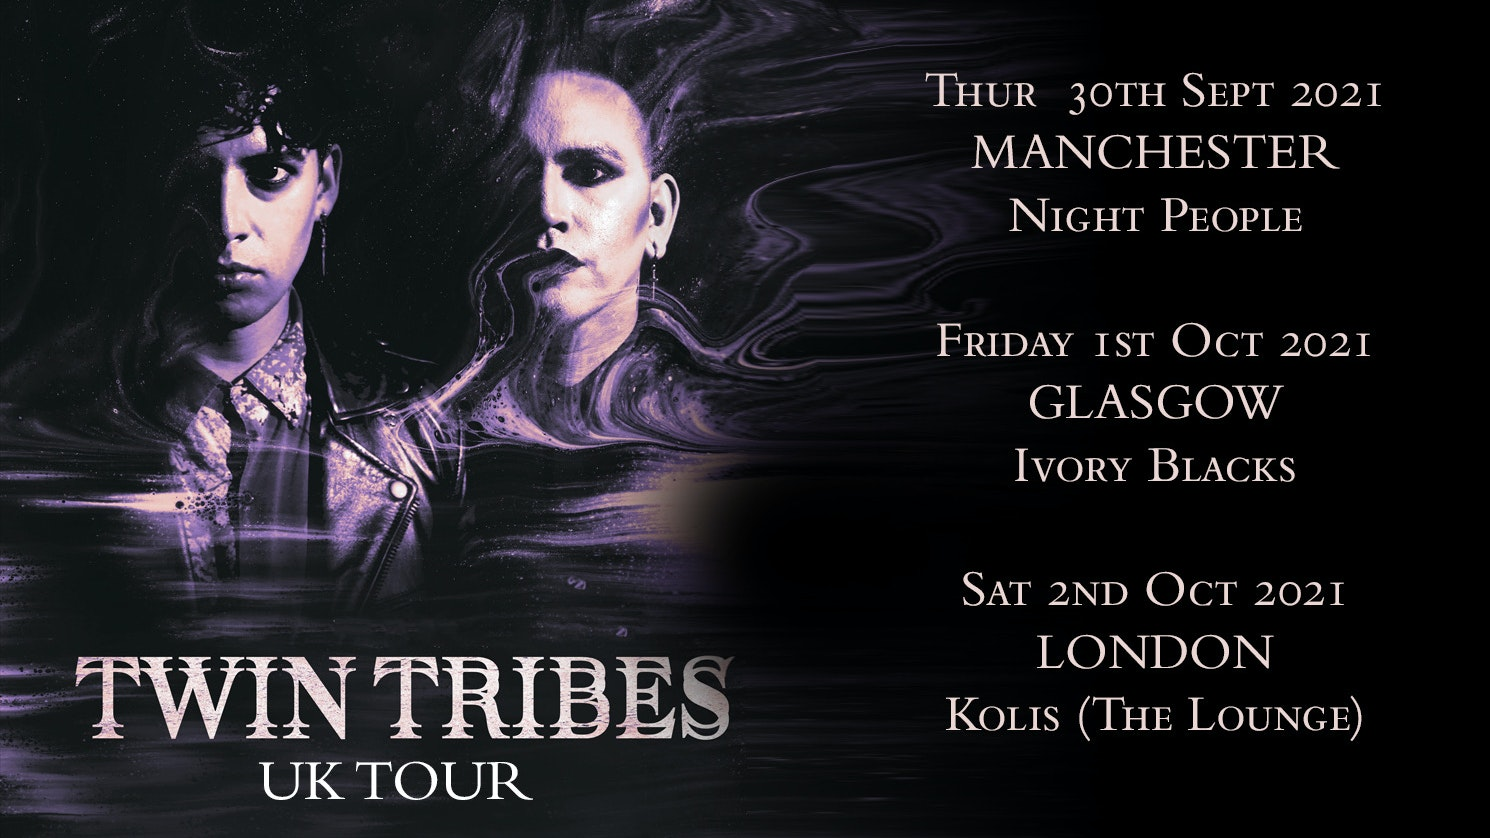 TWIN TRIBES – EVENT CANCELLED!